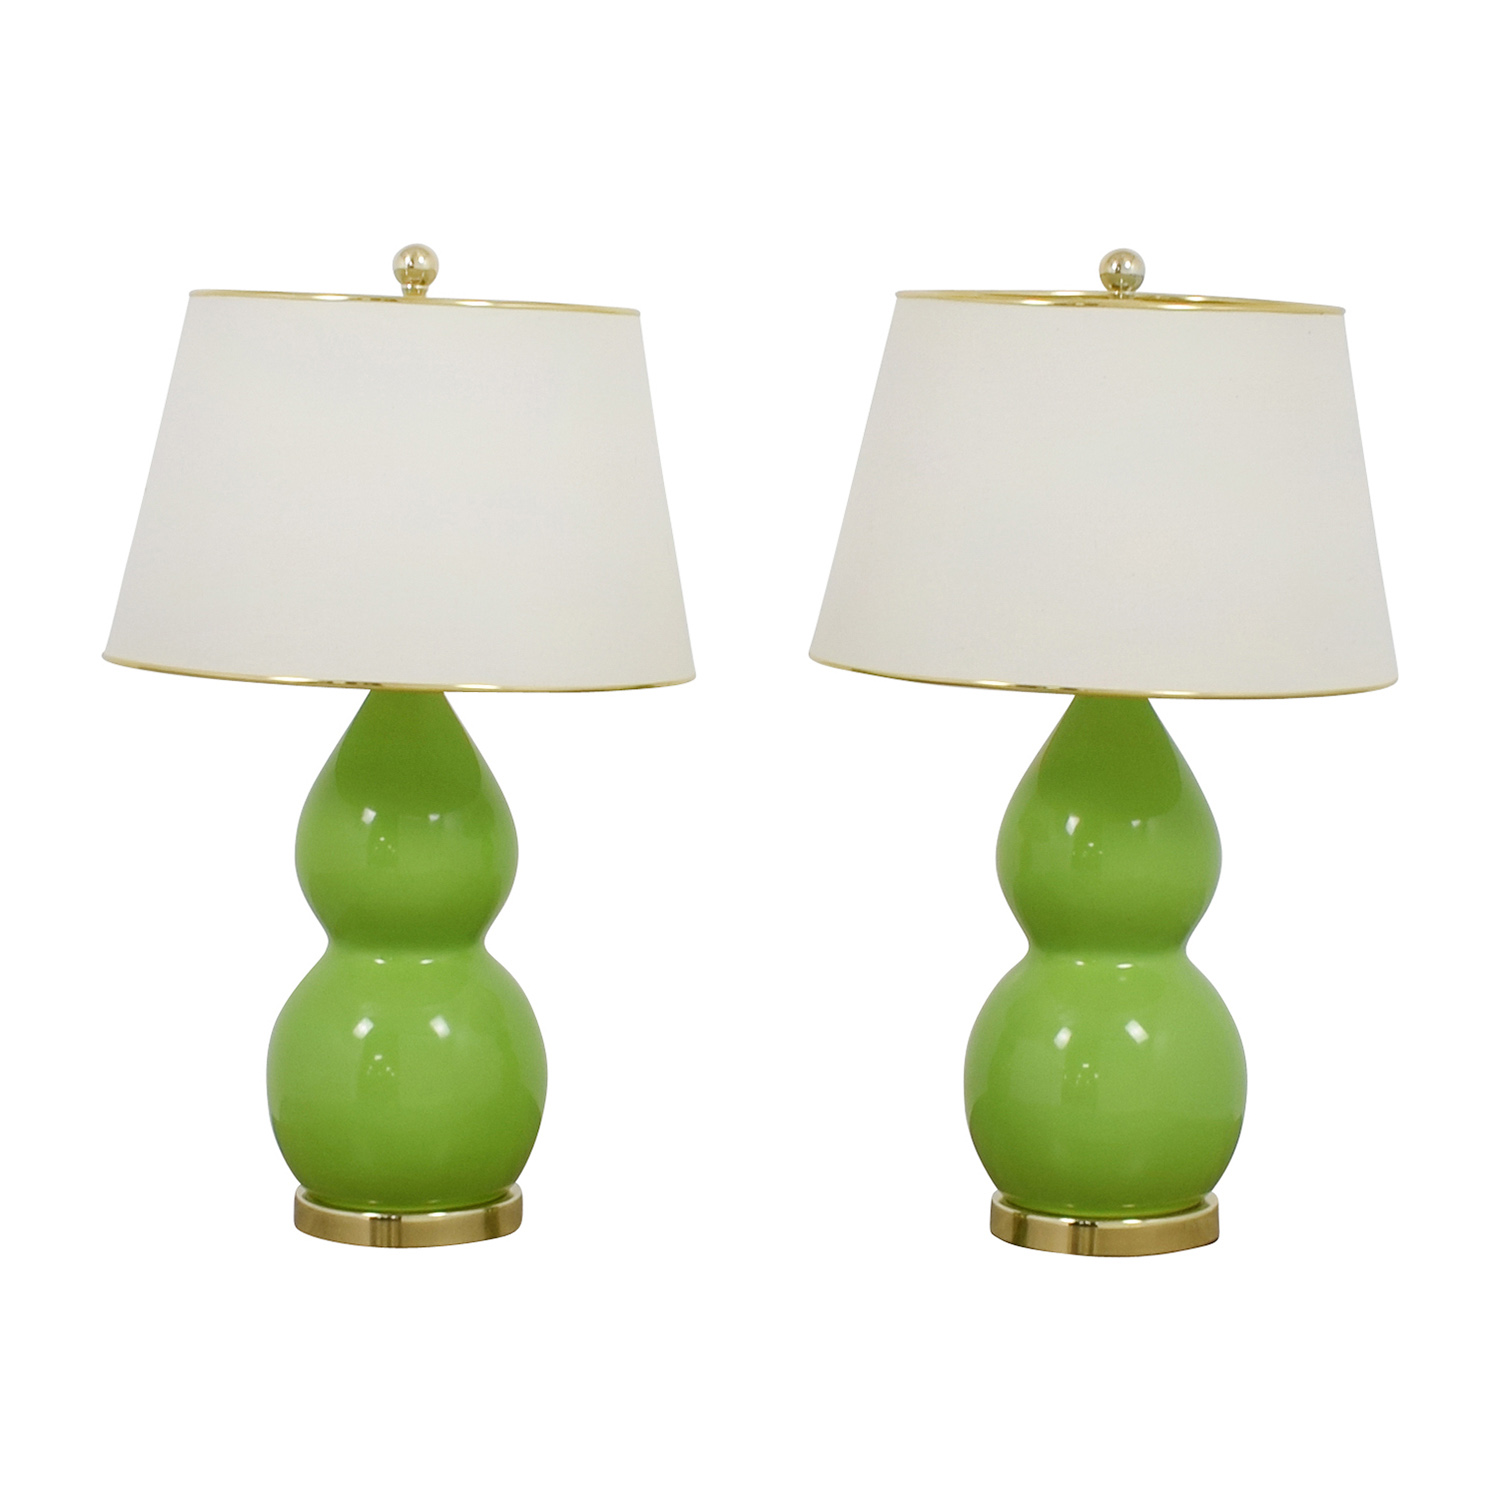 Safavieh Eva Double Green Table Lamps, Set of Two discount